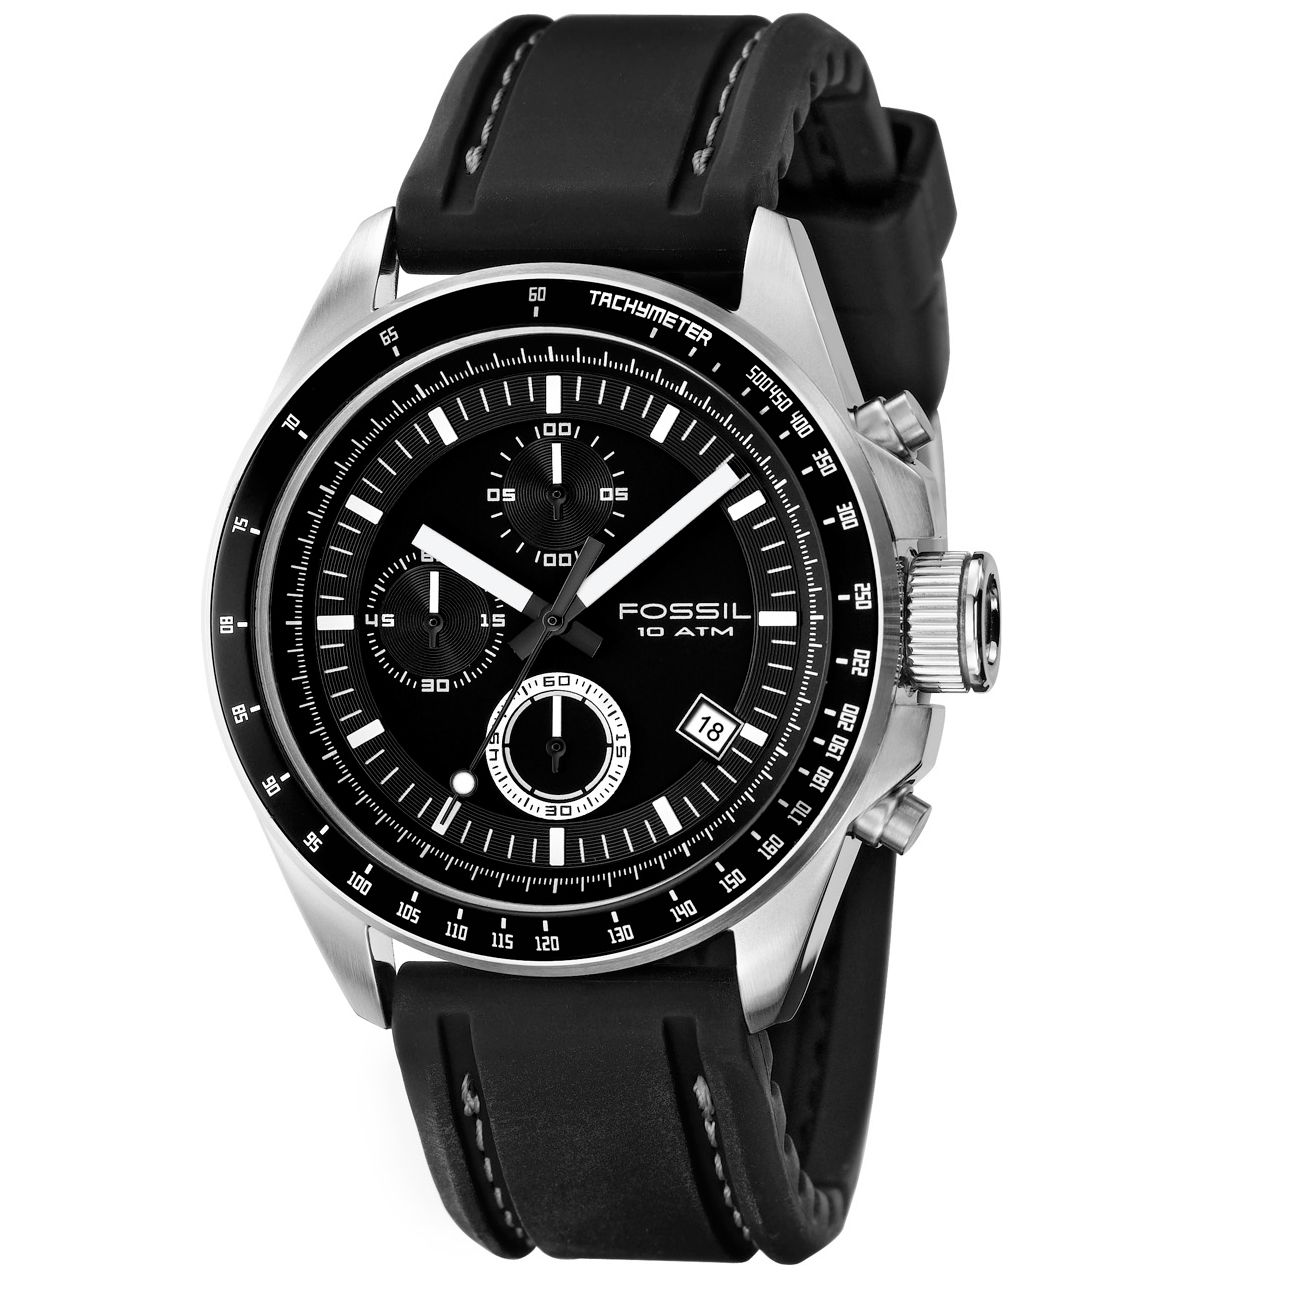 Fossil CH2573 Mens Black Dial Watch